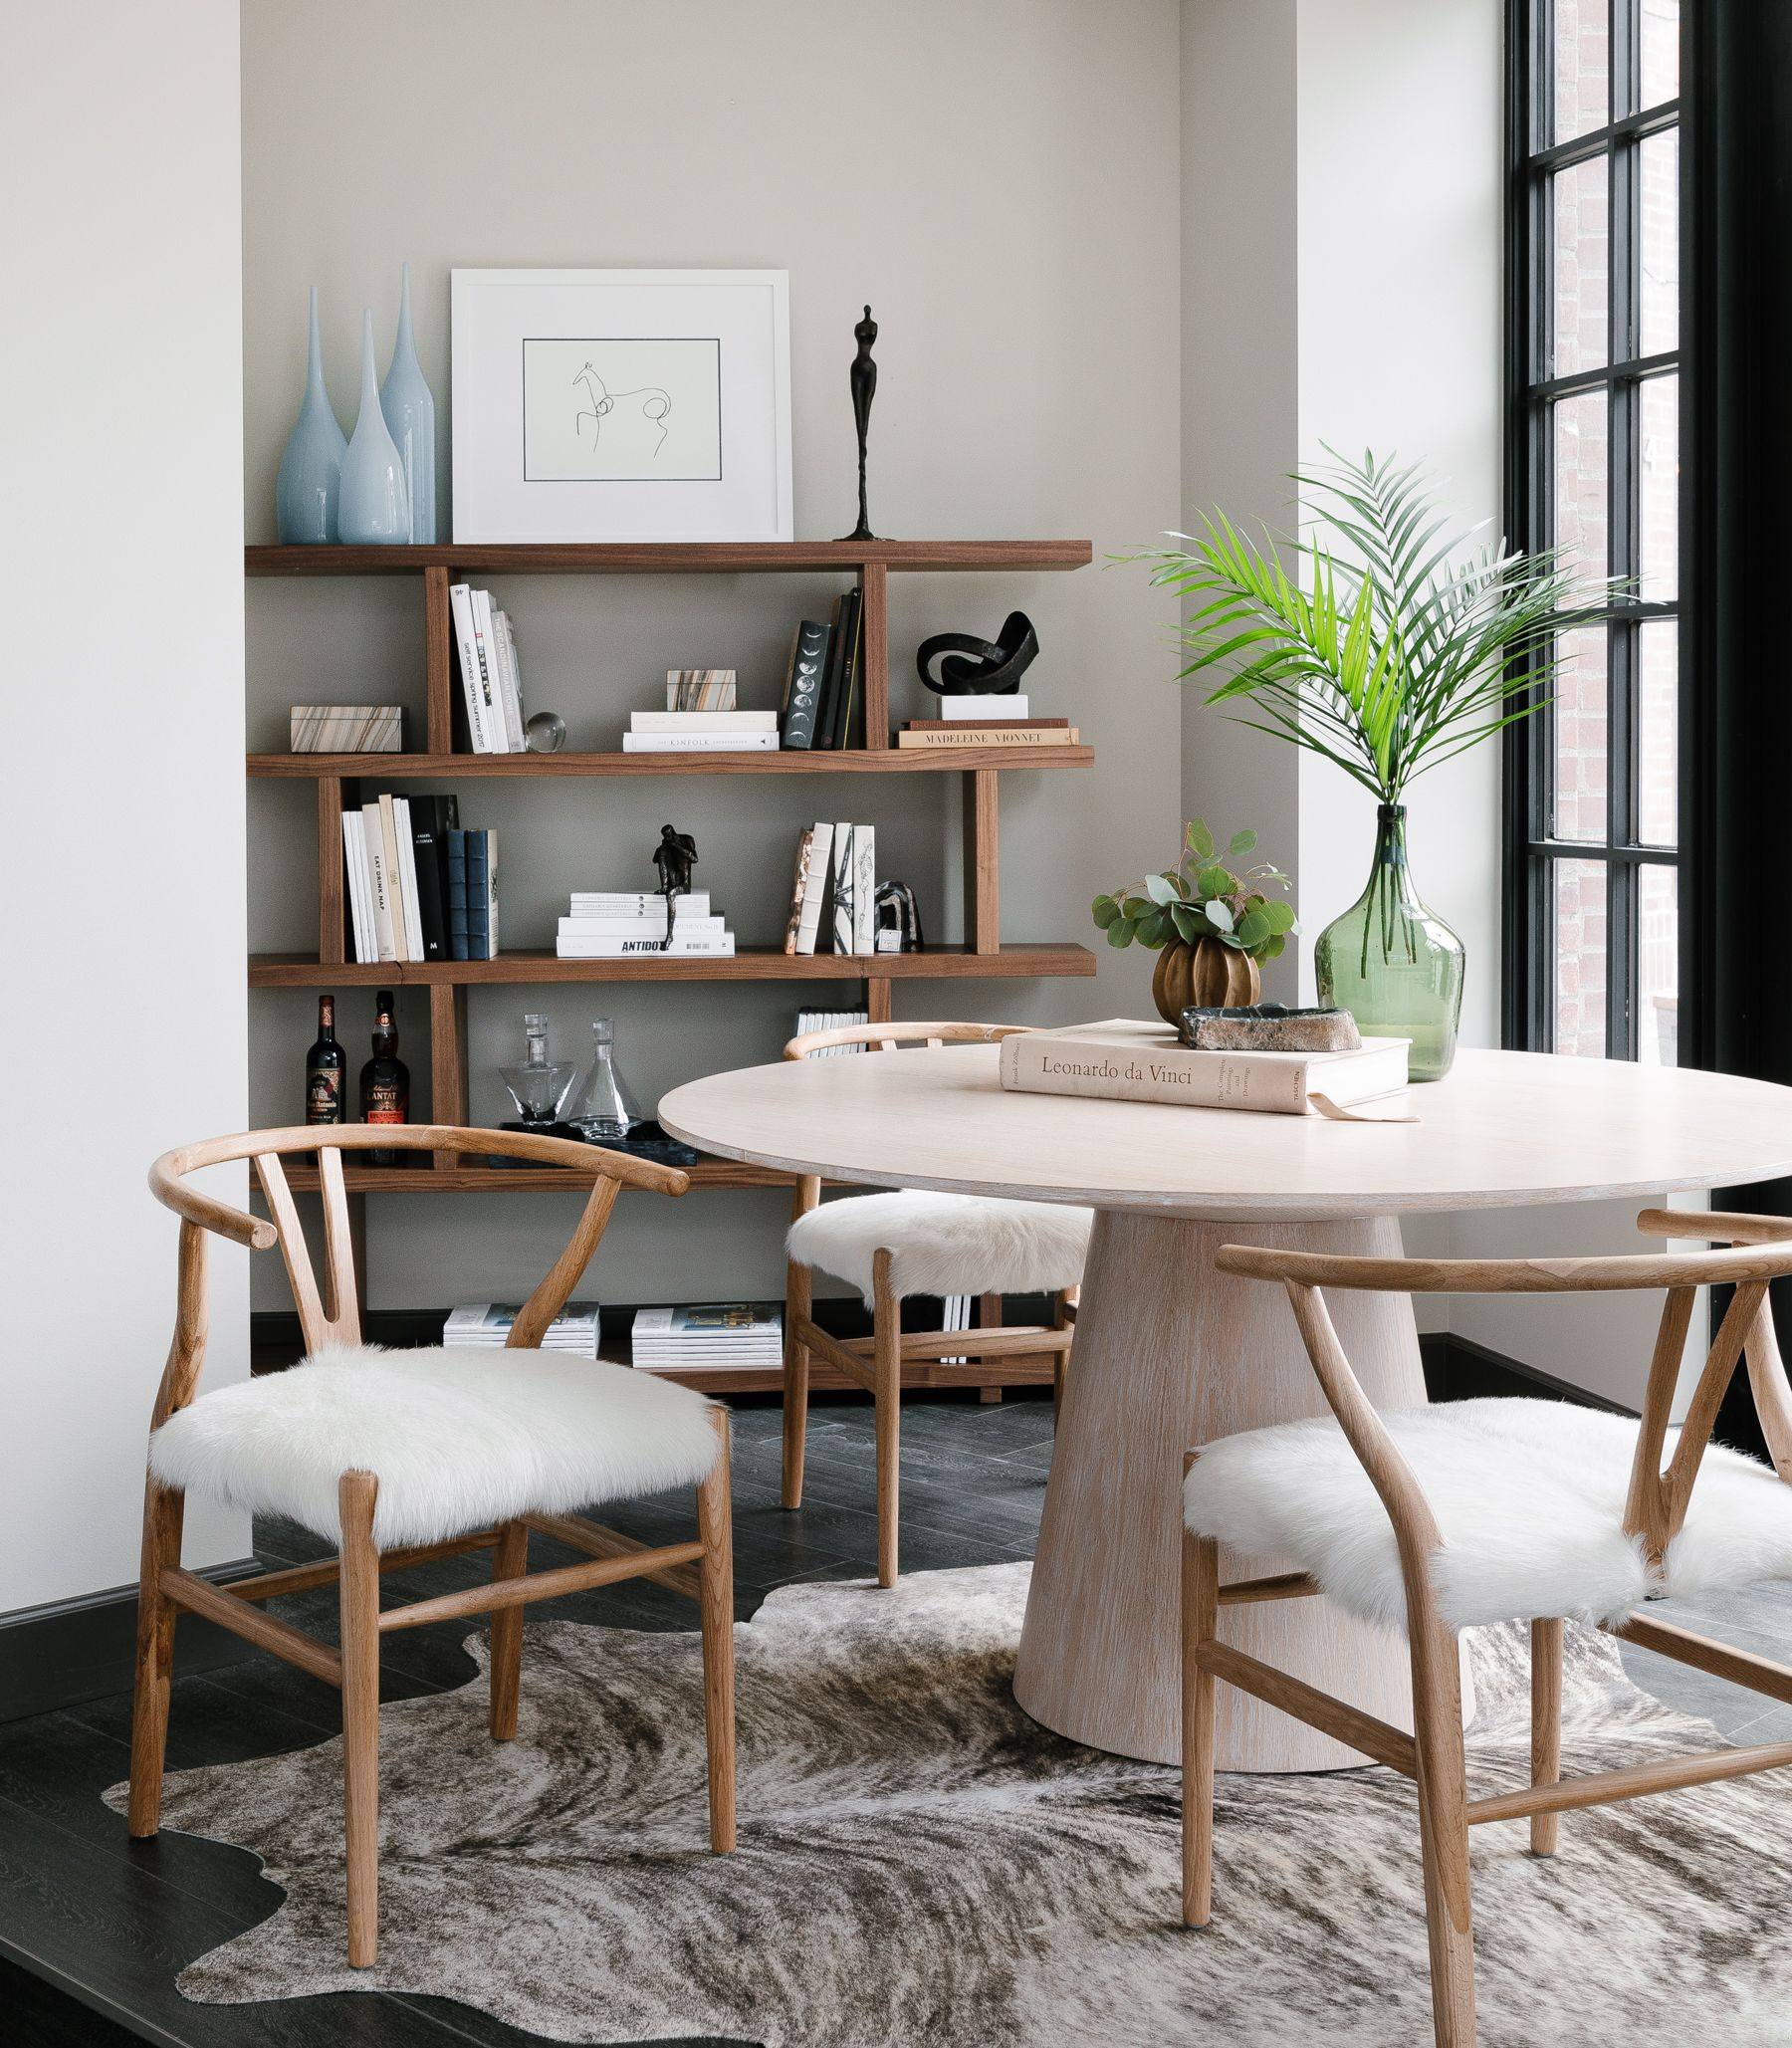 Arden Home Round Oak Dining Table Wishbone Chairs With Cowhide Round Oak Dining Table Oak Dining Table Cheap Living Room Decor